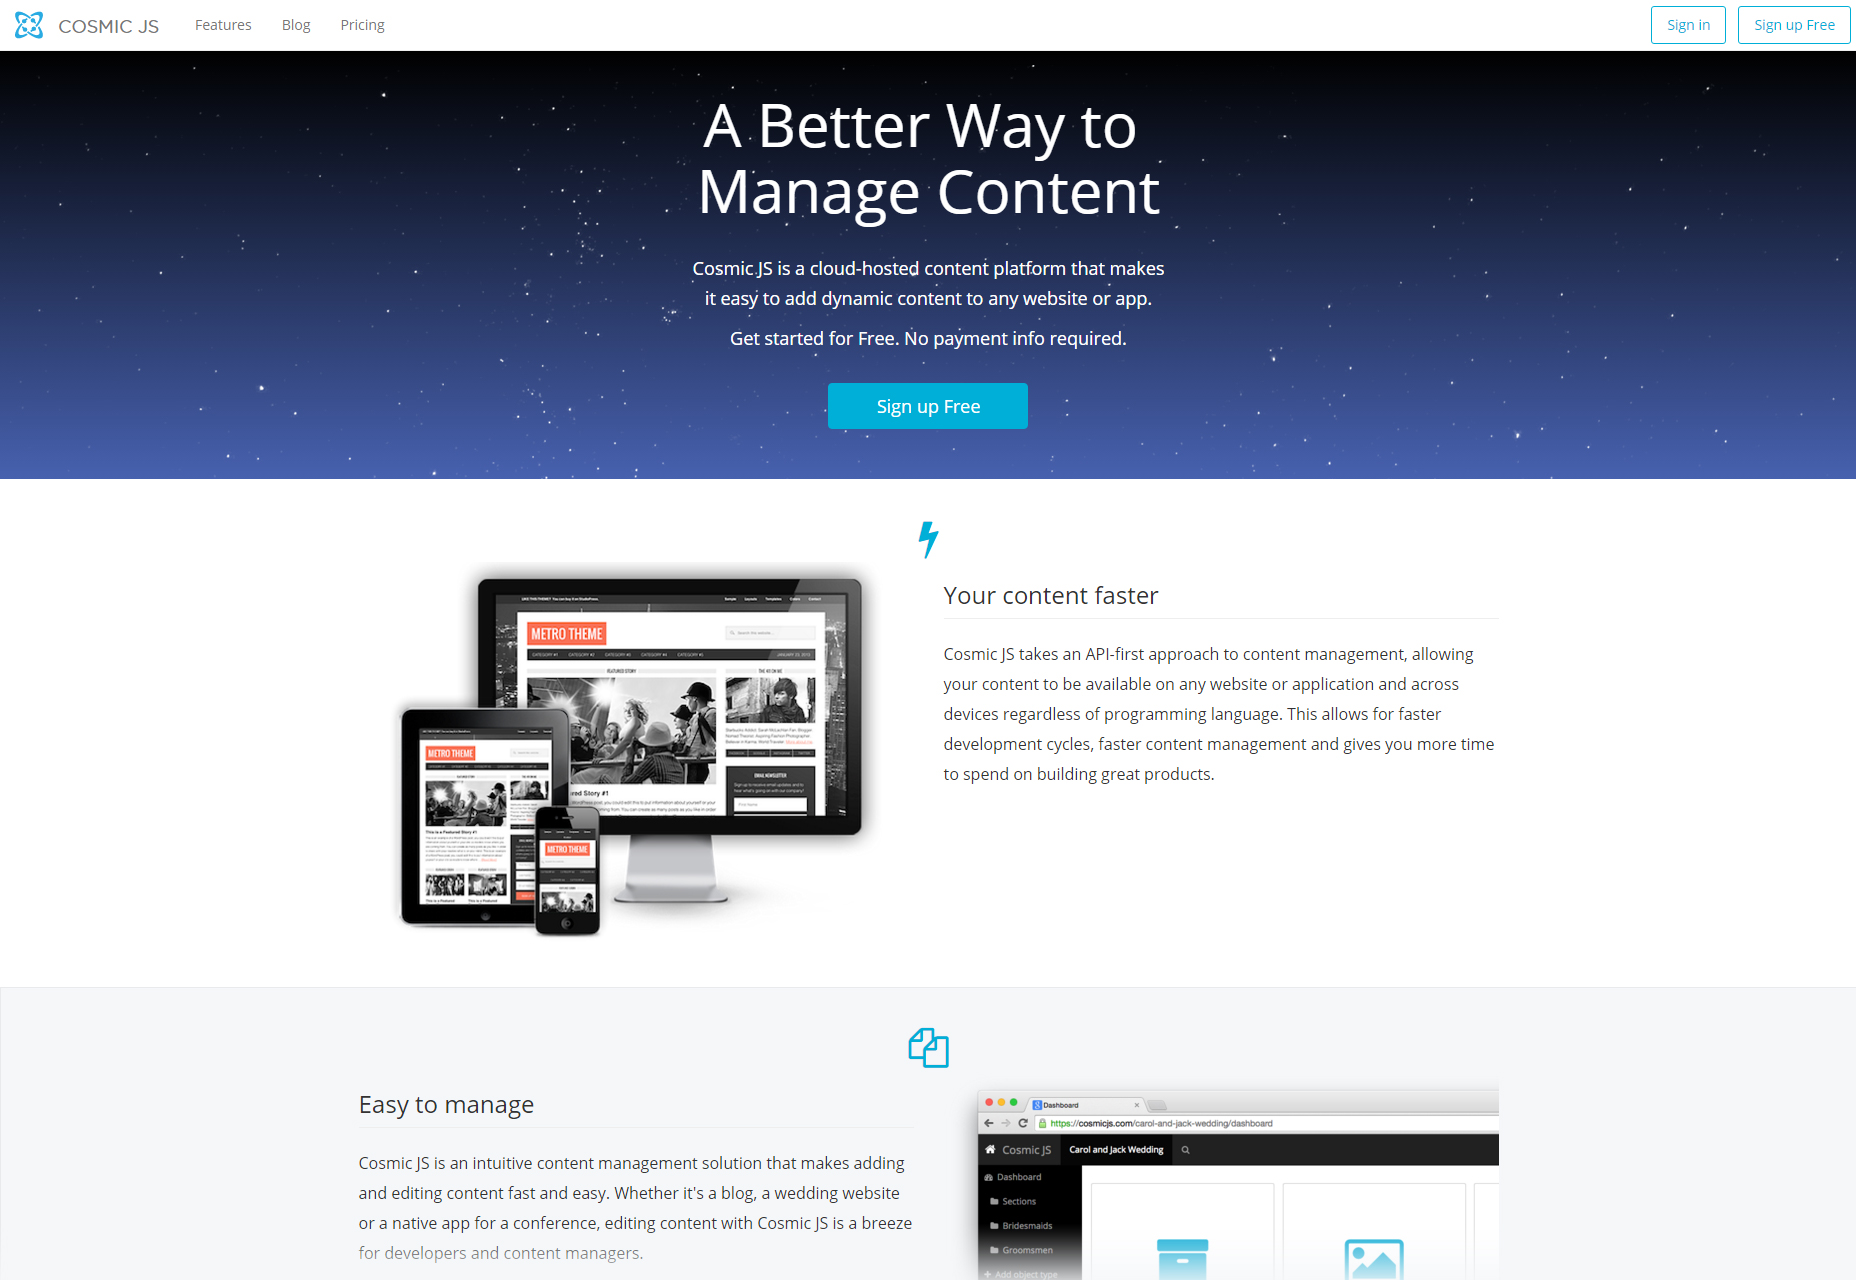 CosmicJS: Cloud-Hosted Content Management Platform